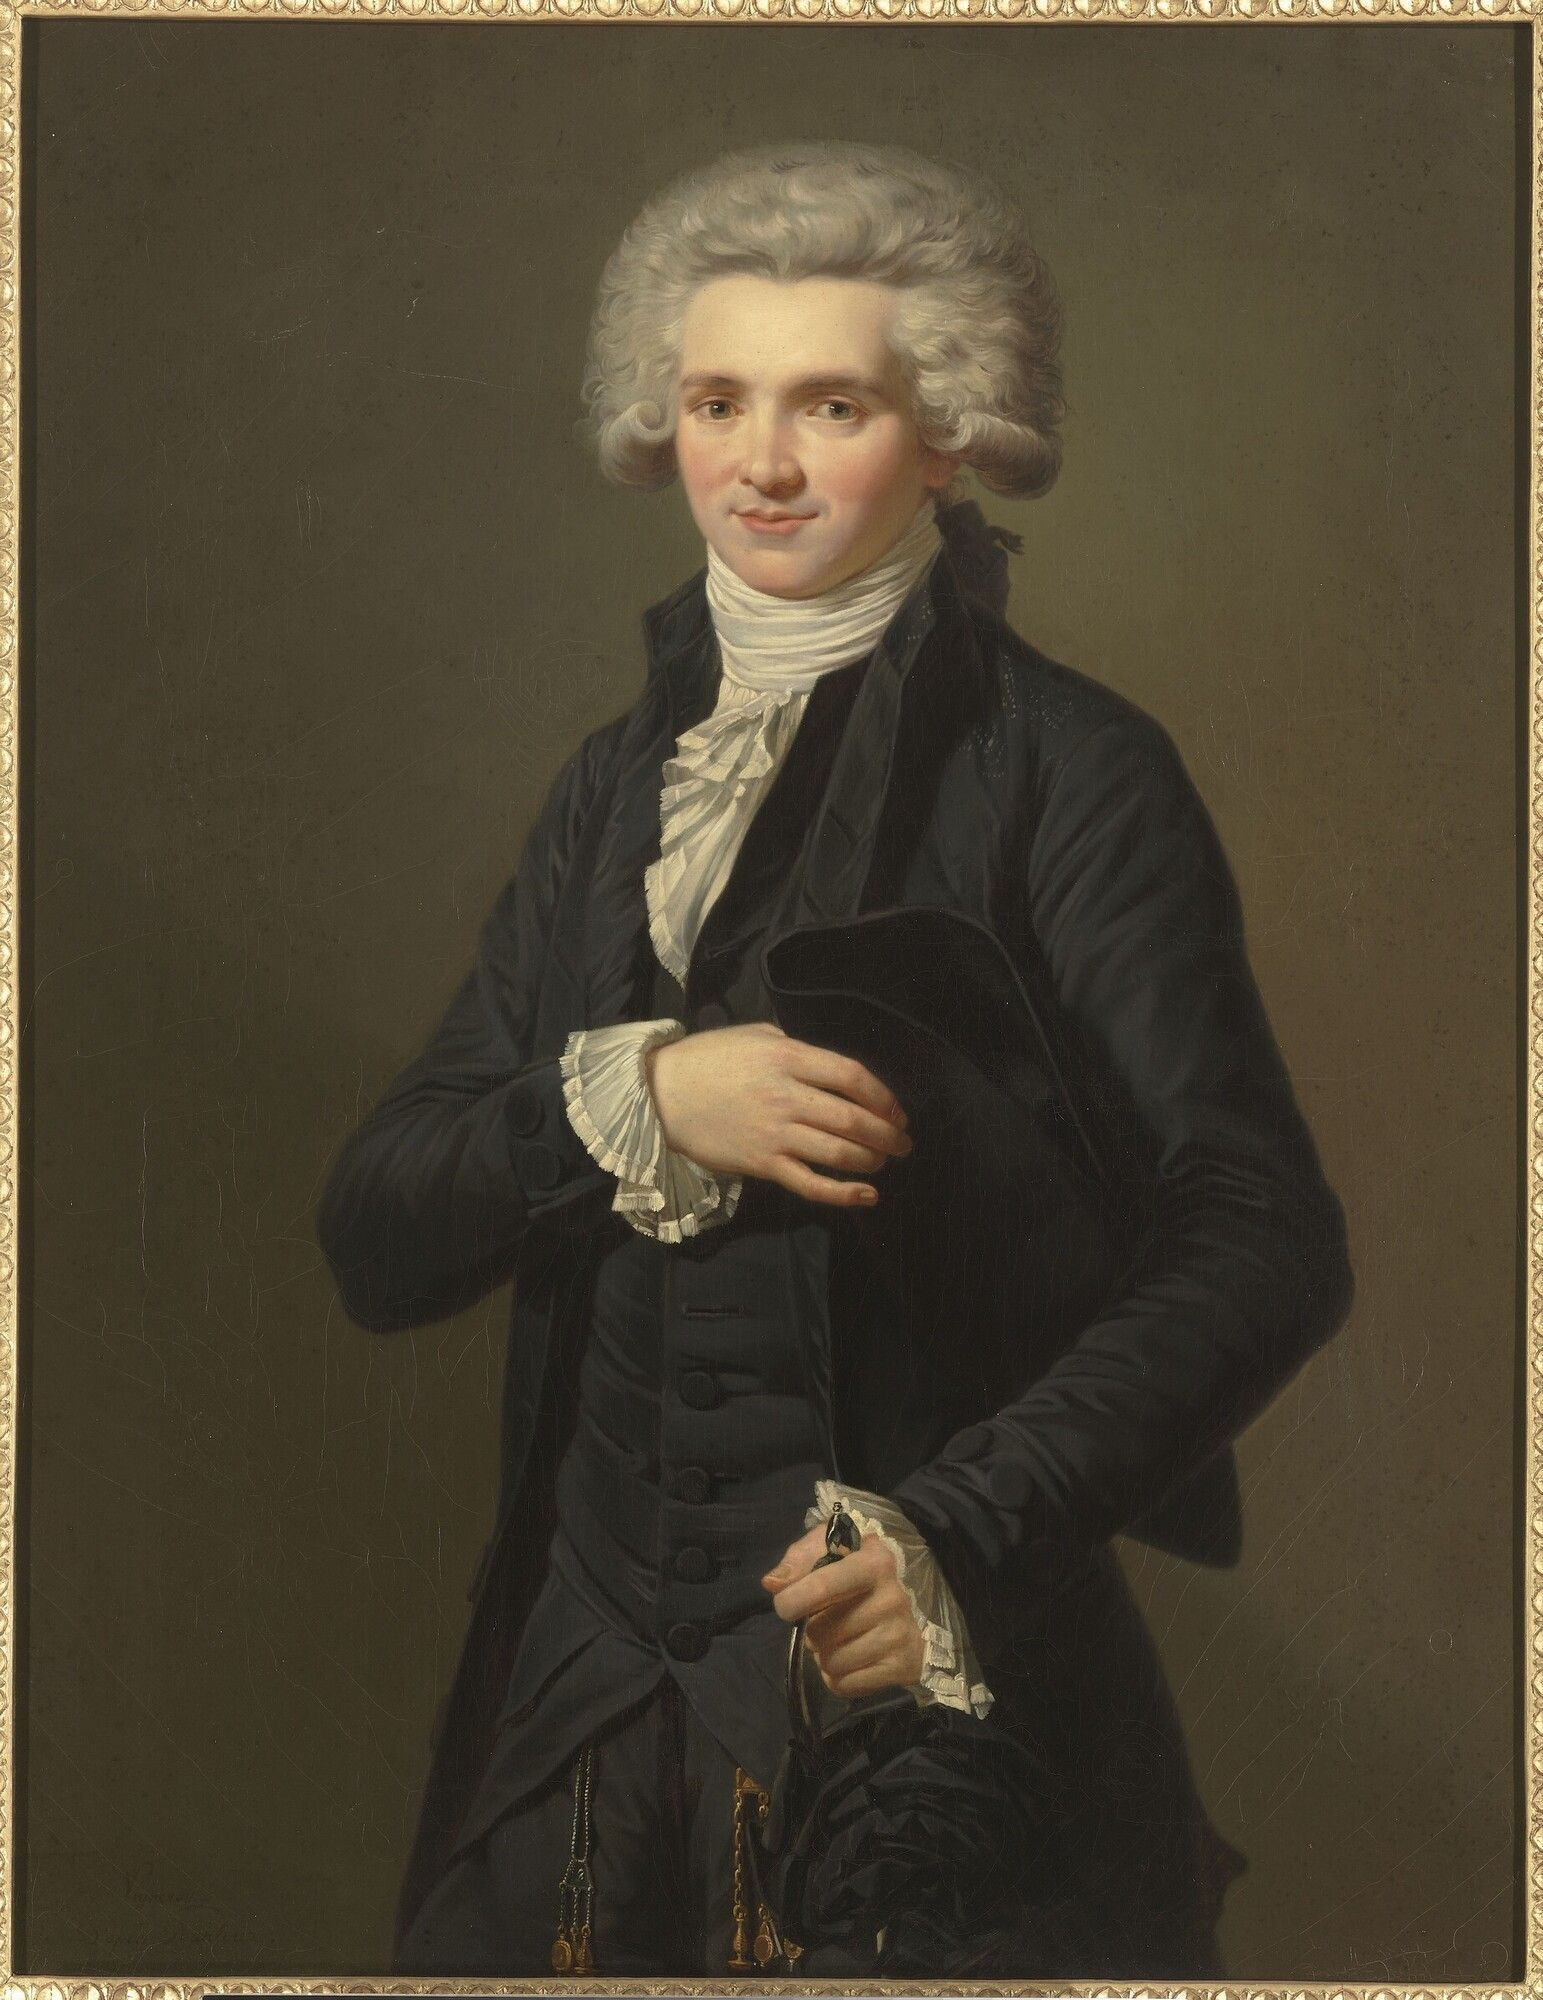 biography of maximilien de robespierre Maximilien robespierre was born in northern france on may 6, 1758 after his parents died, maximilien and his three siblings went to live with their grandparents young maximilien was a smart child who enjoyed reading and studying law.